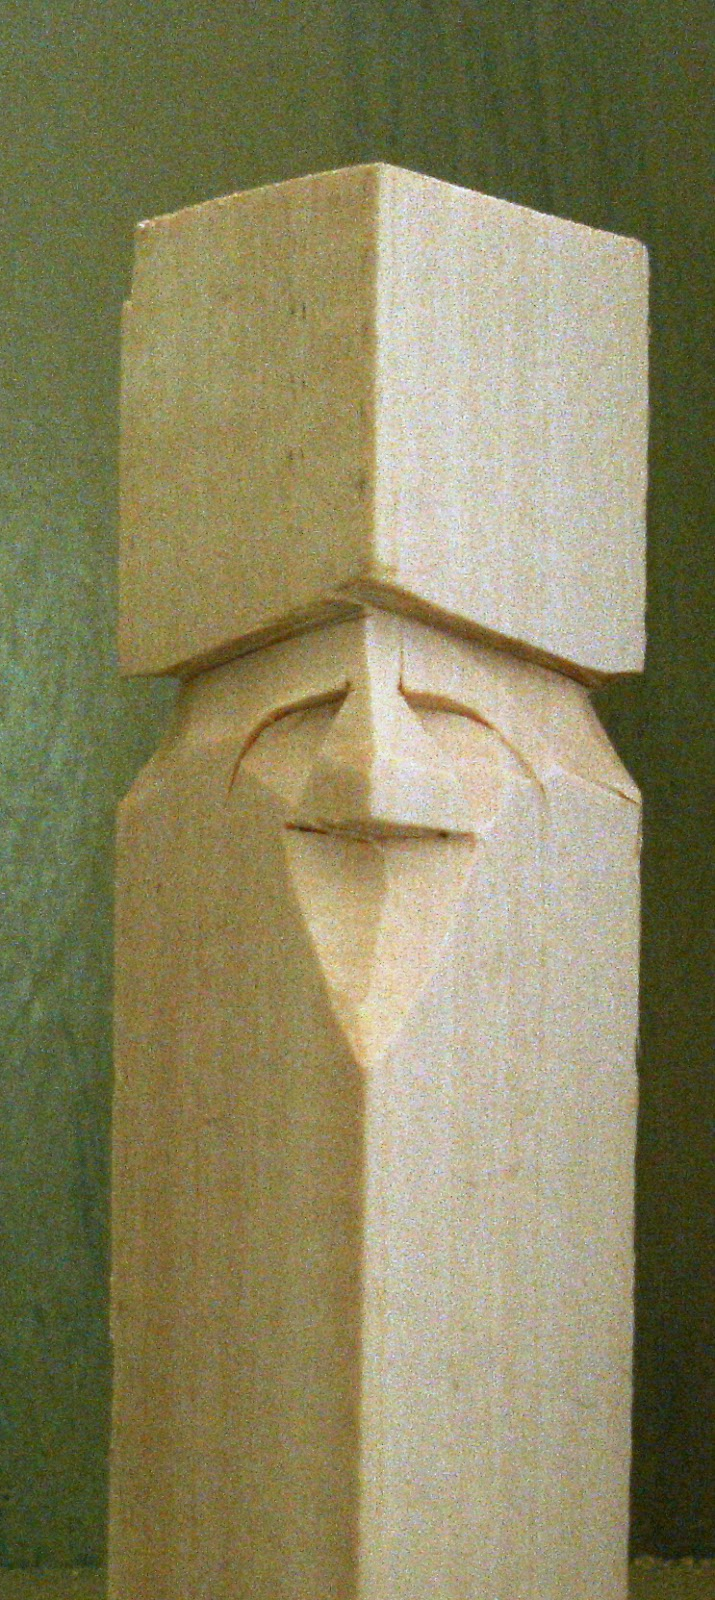 Beginners carving corner and beyond whittling a face